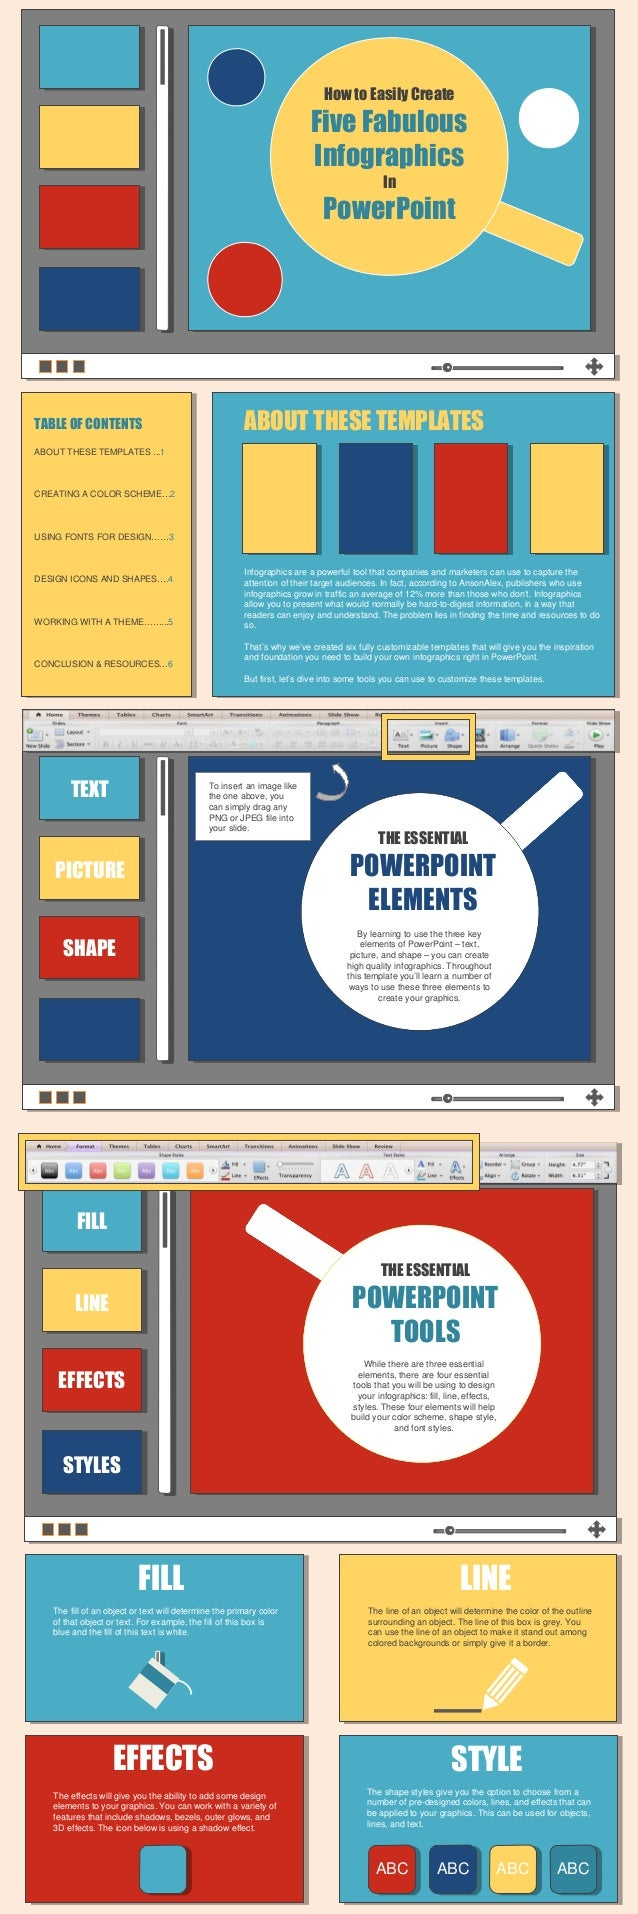 How to-create-5-fabulous-infographics-v2.1